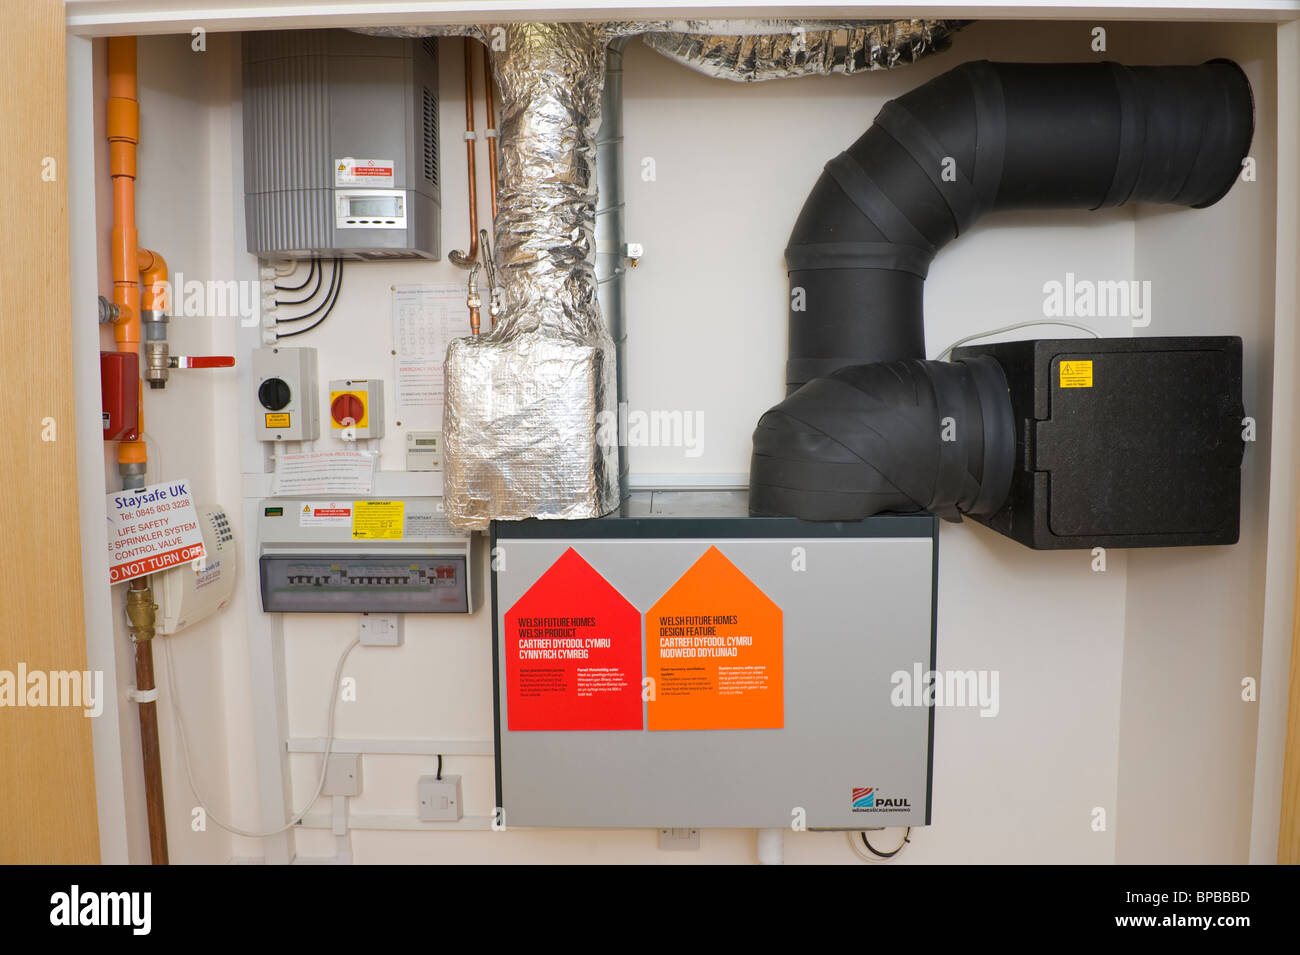 Energy efficient heat recovery ventilation system used in an environmentally sustainable zero carbon passive house - Stock Image